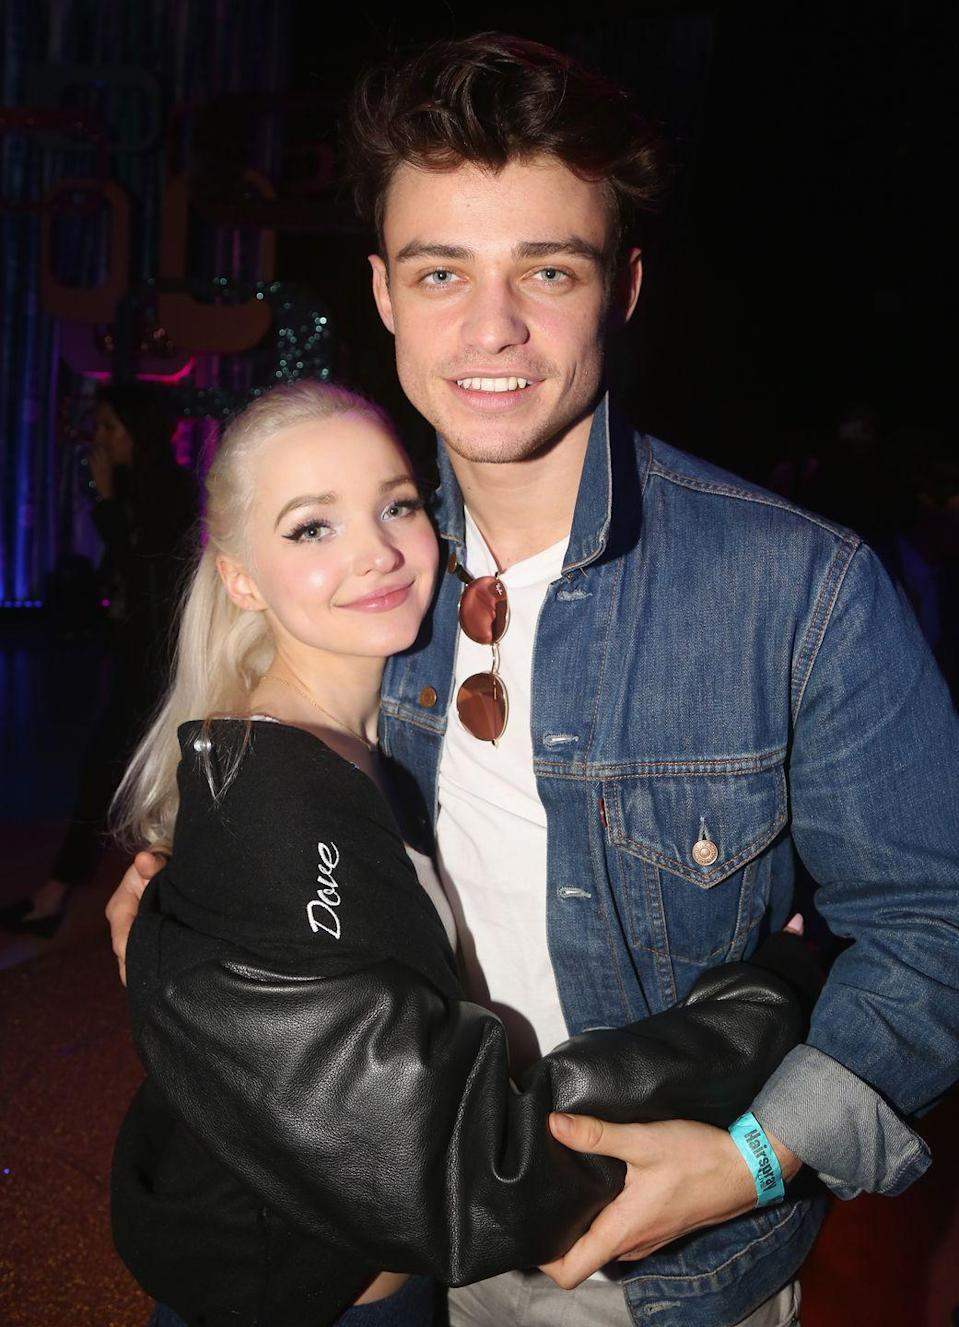 """<p>Fans did not foresee Dove and Thomas breaking up ever, but 2020 was a beast with no boundaries. After fans began speculating that <a href=""""https://www.cosmopolitan.com/entertainment/celebs/a34950384/dove-cameron-thomas-doherty-split-almost-four-years-together/#:~:text=Dove%20Cameron%20and%20Thomas%20Doherty%20have%20called%20it,almost%20four%20years%20of%20dating.&text=We%20know%20there%20have%20been,I%20decided%20to%20part%20ways."""" rel=""""nofollow noopener"""" target=""""_blank"""" data-ylk=""""slk:they ended their nearly four-year relationship"""" class=""""link rapid-noclick-resp"""">they ended their nearly four-year relationship</a>, Dove posted a statement on her and Thomas' behalf to her Instagram Stories and said, """"In October, Thomas and I decided to part ways. The decision was incredibly difficult, but we still have love for each other, and will remain friends. Thank you for allowing us our privacy in this time."""" 😭</p>"""